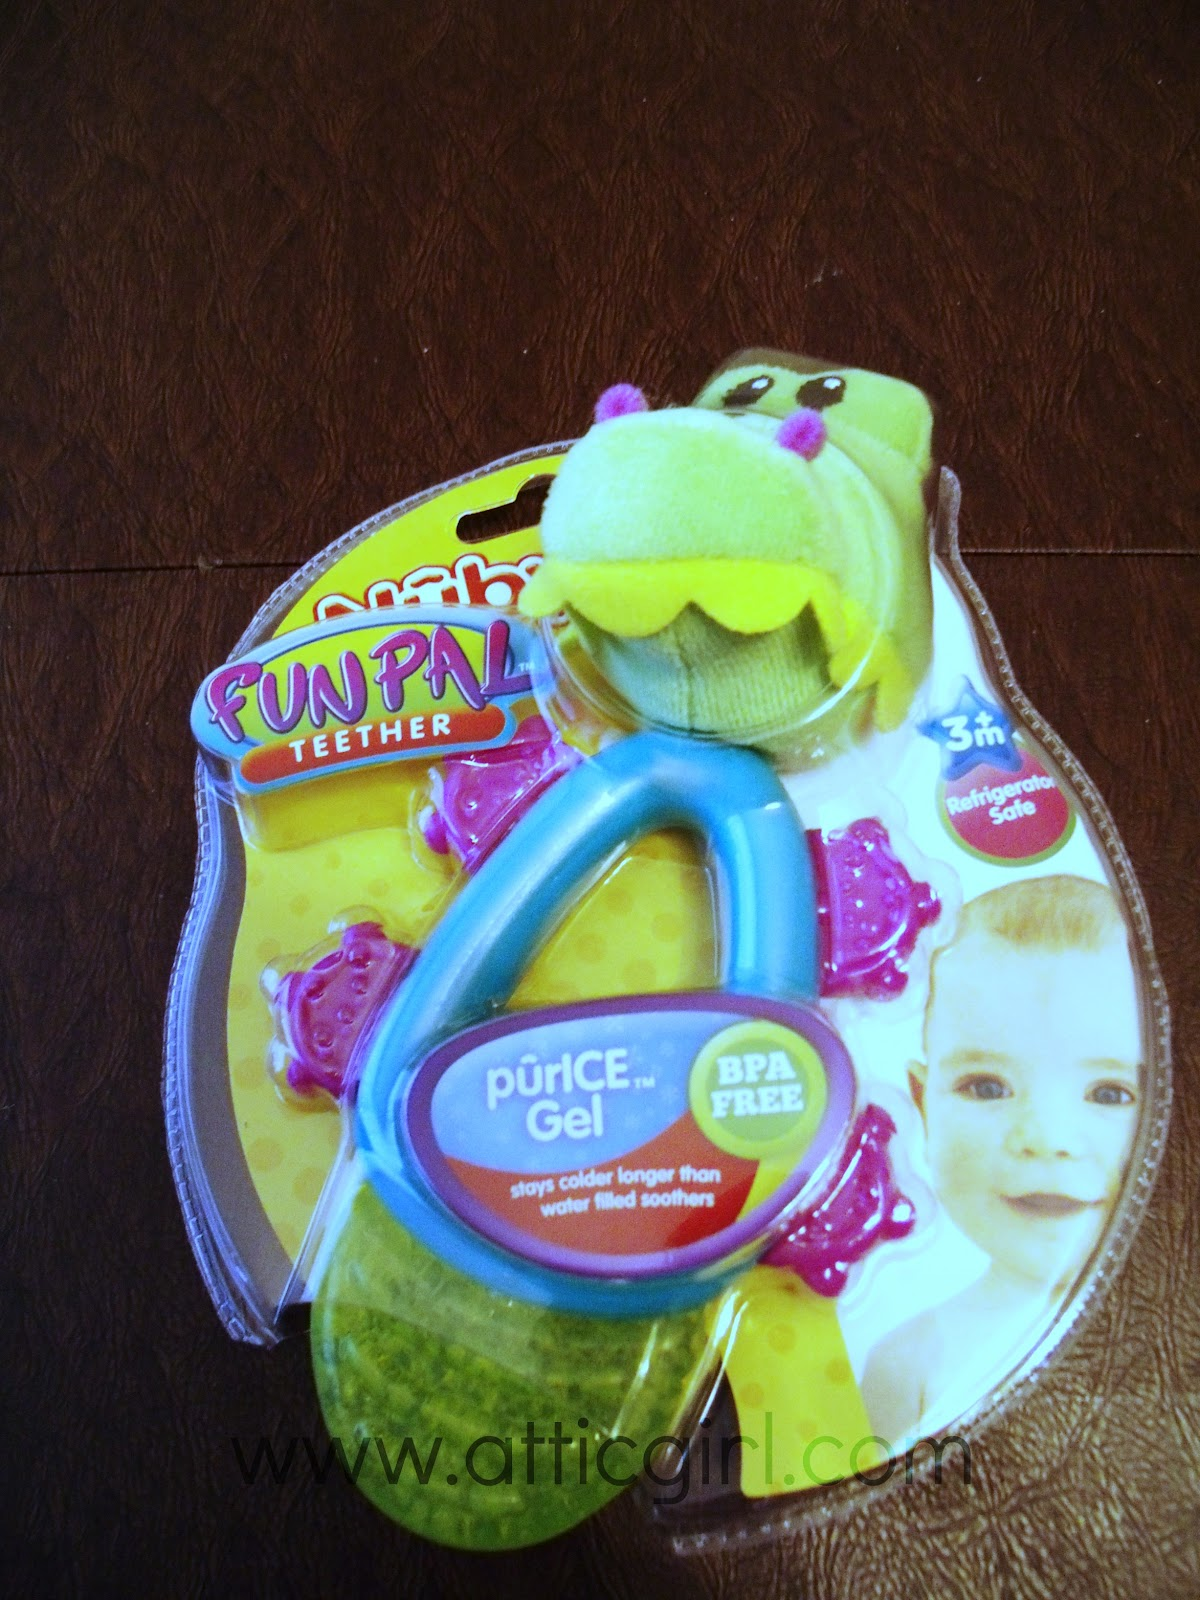 Nuby, teether, purice gel